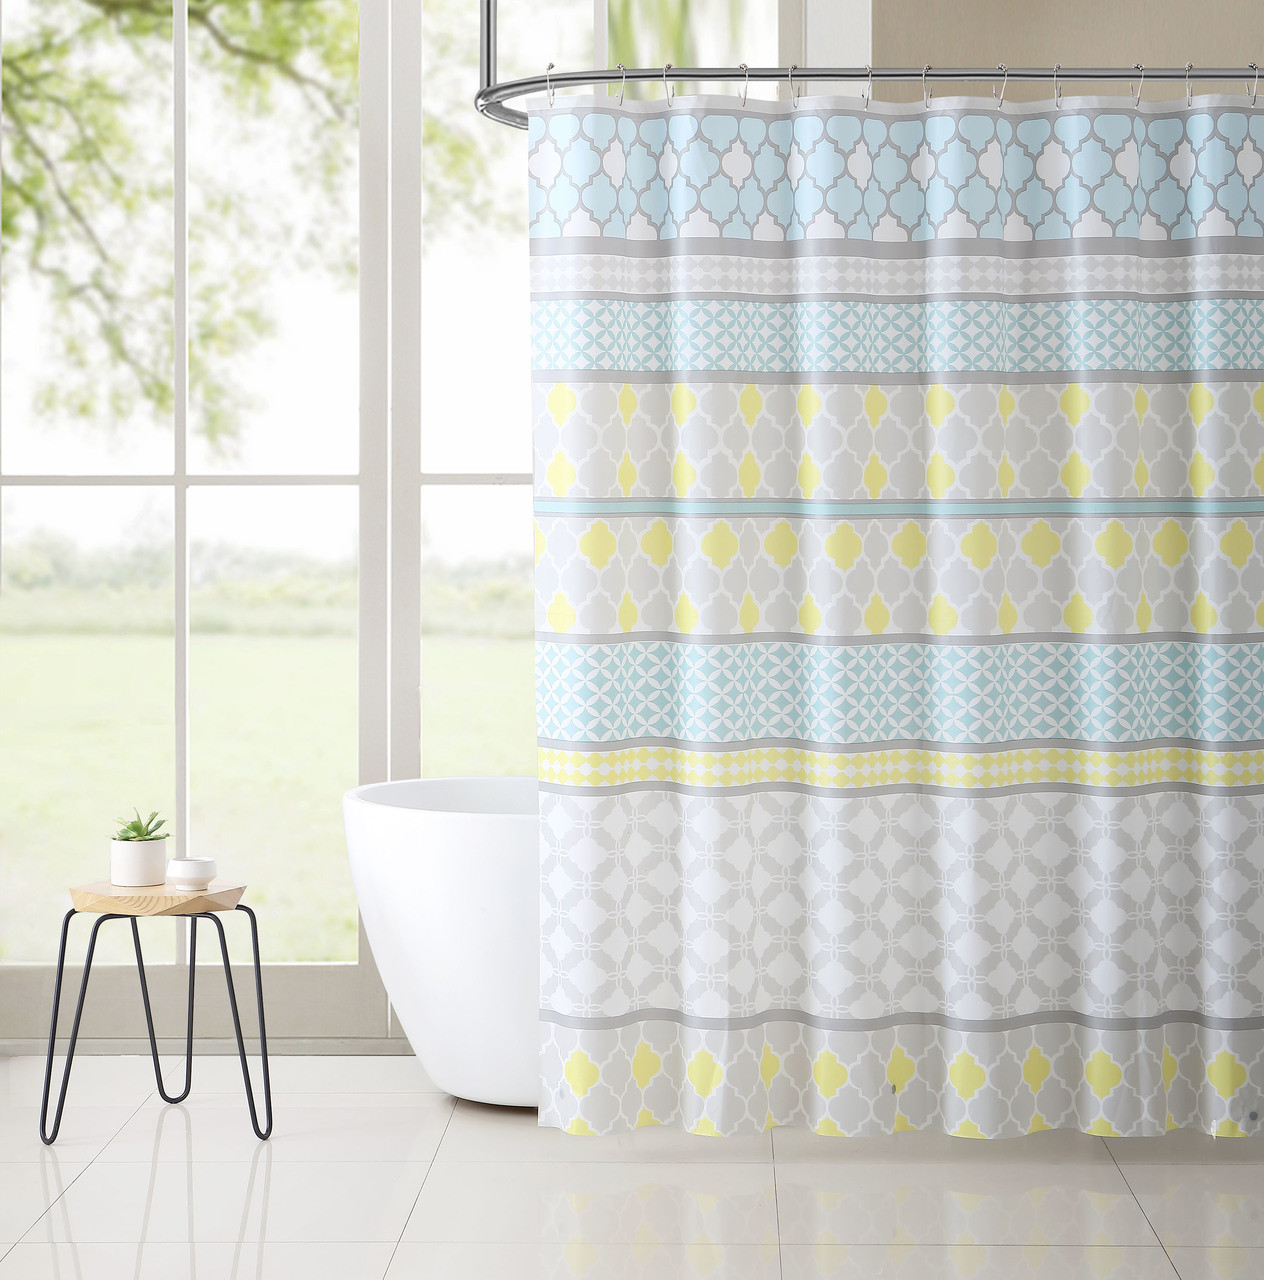 PEVA Shower Curtain Liner Odorless PVC And Chlorine Free